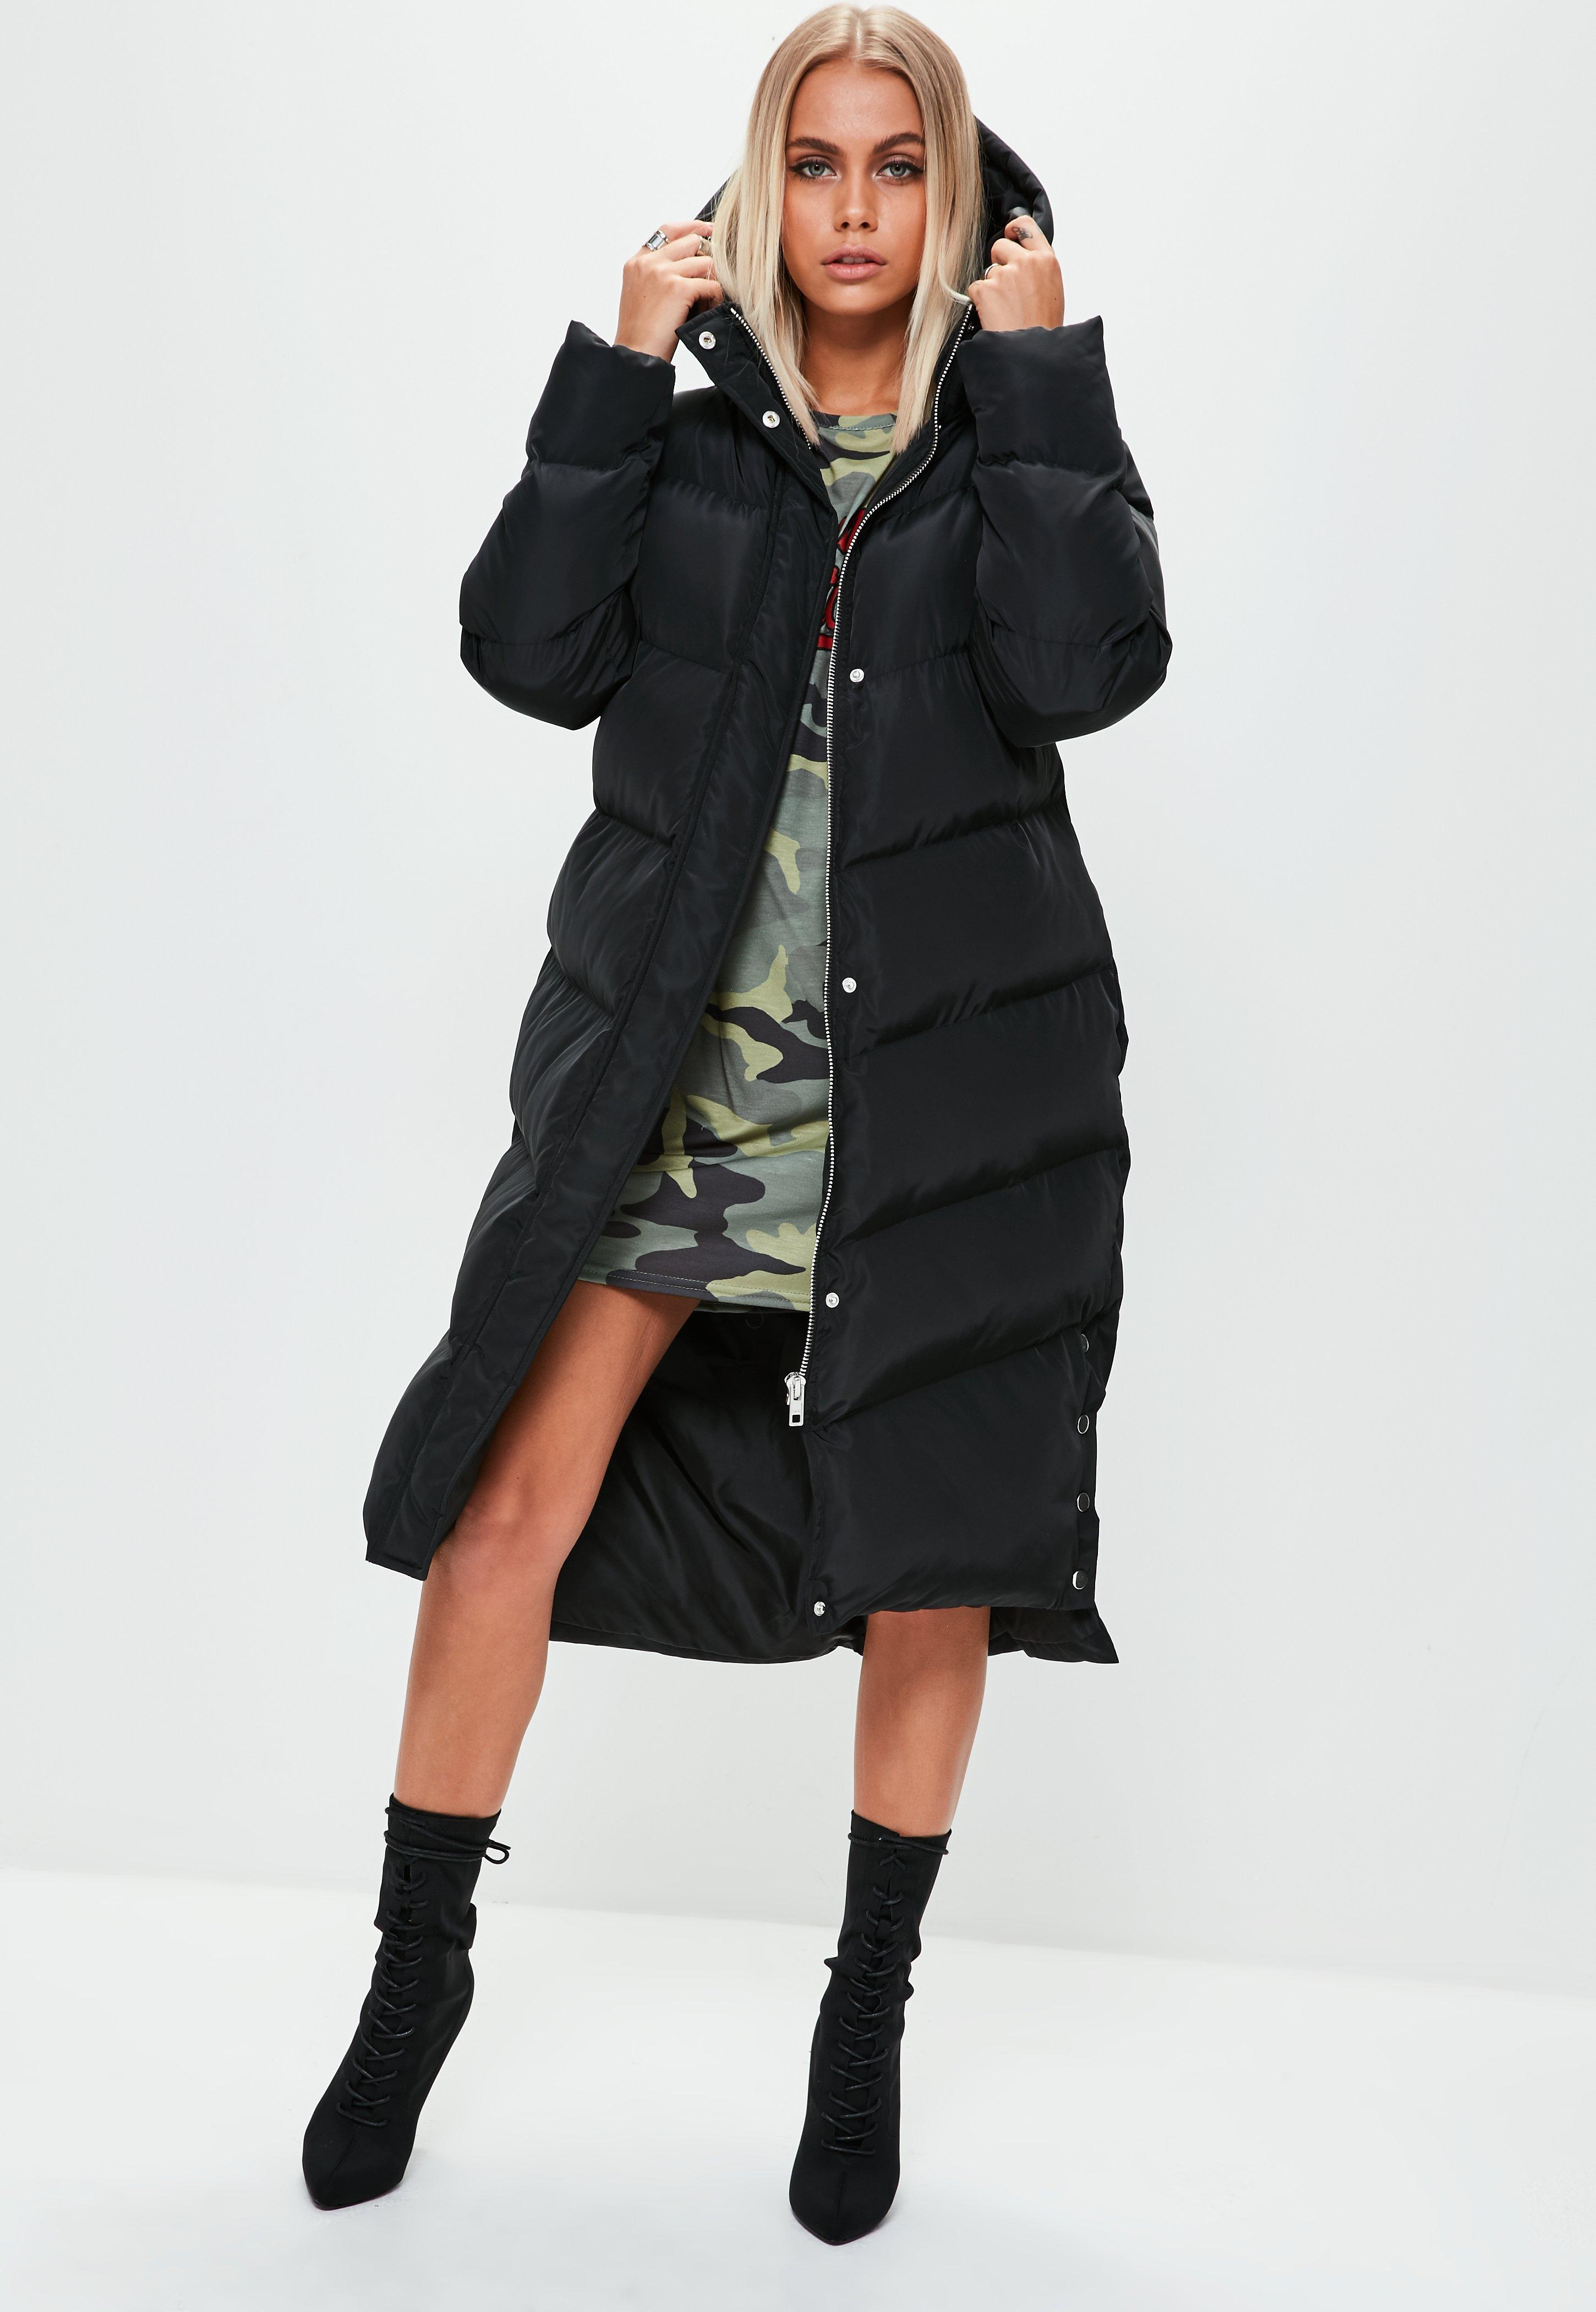 Black puffer jacket women's missguided